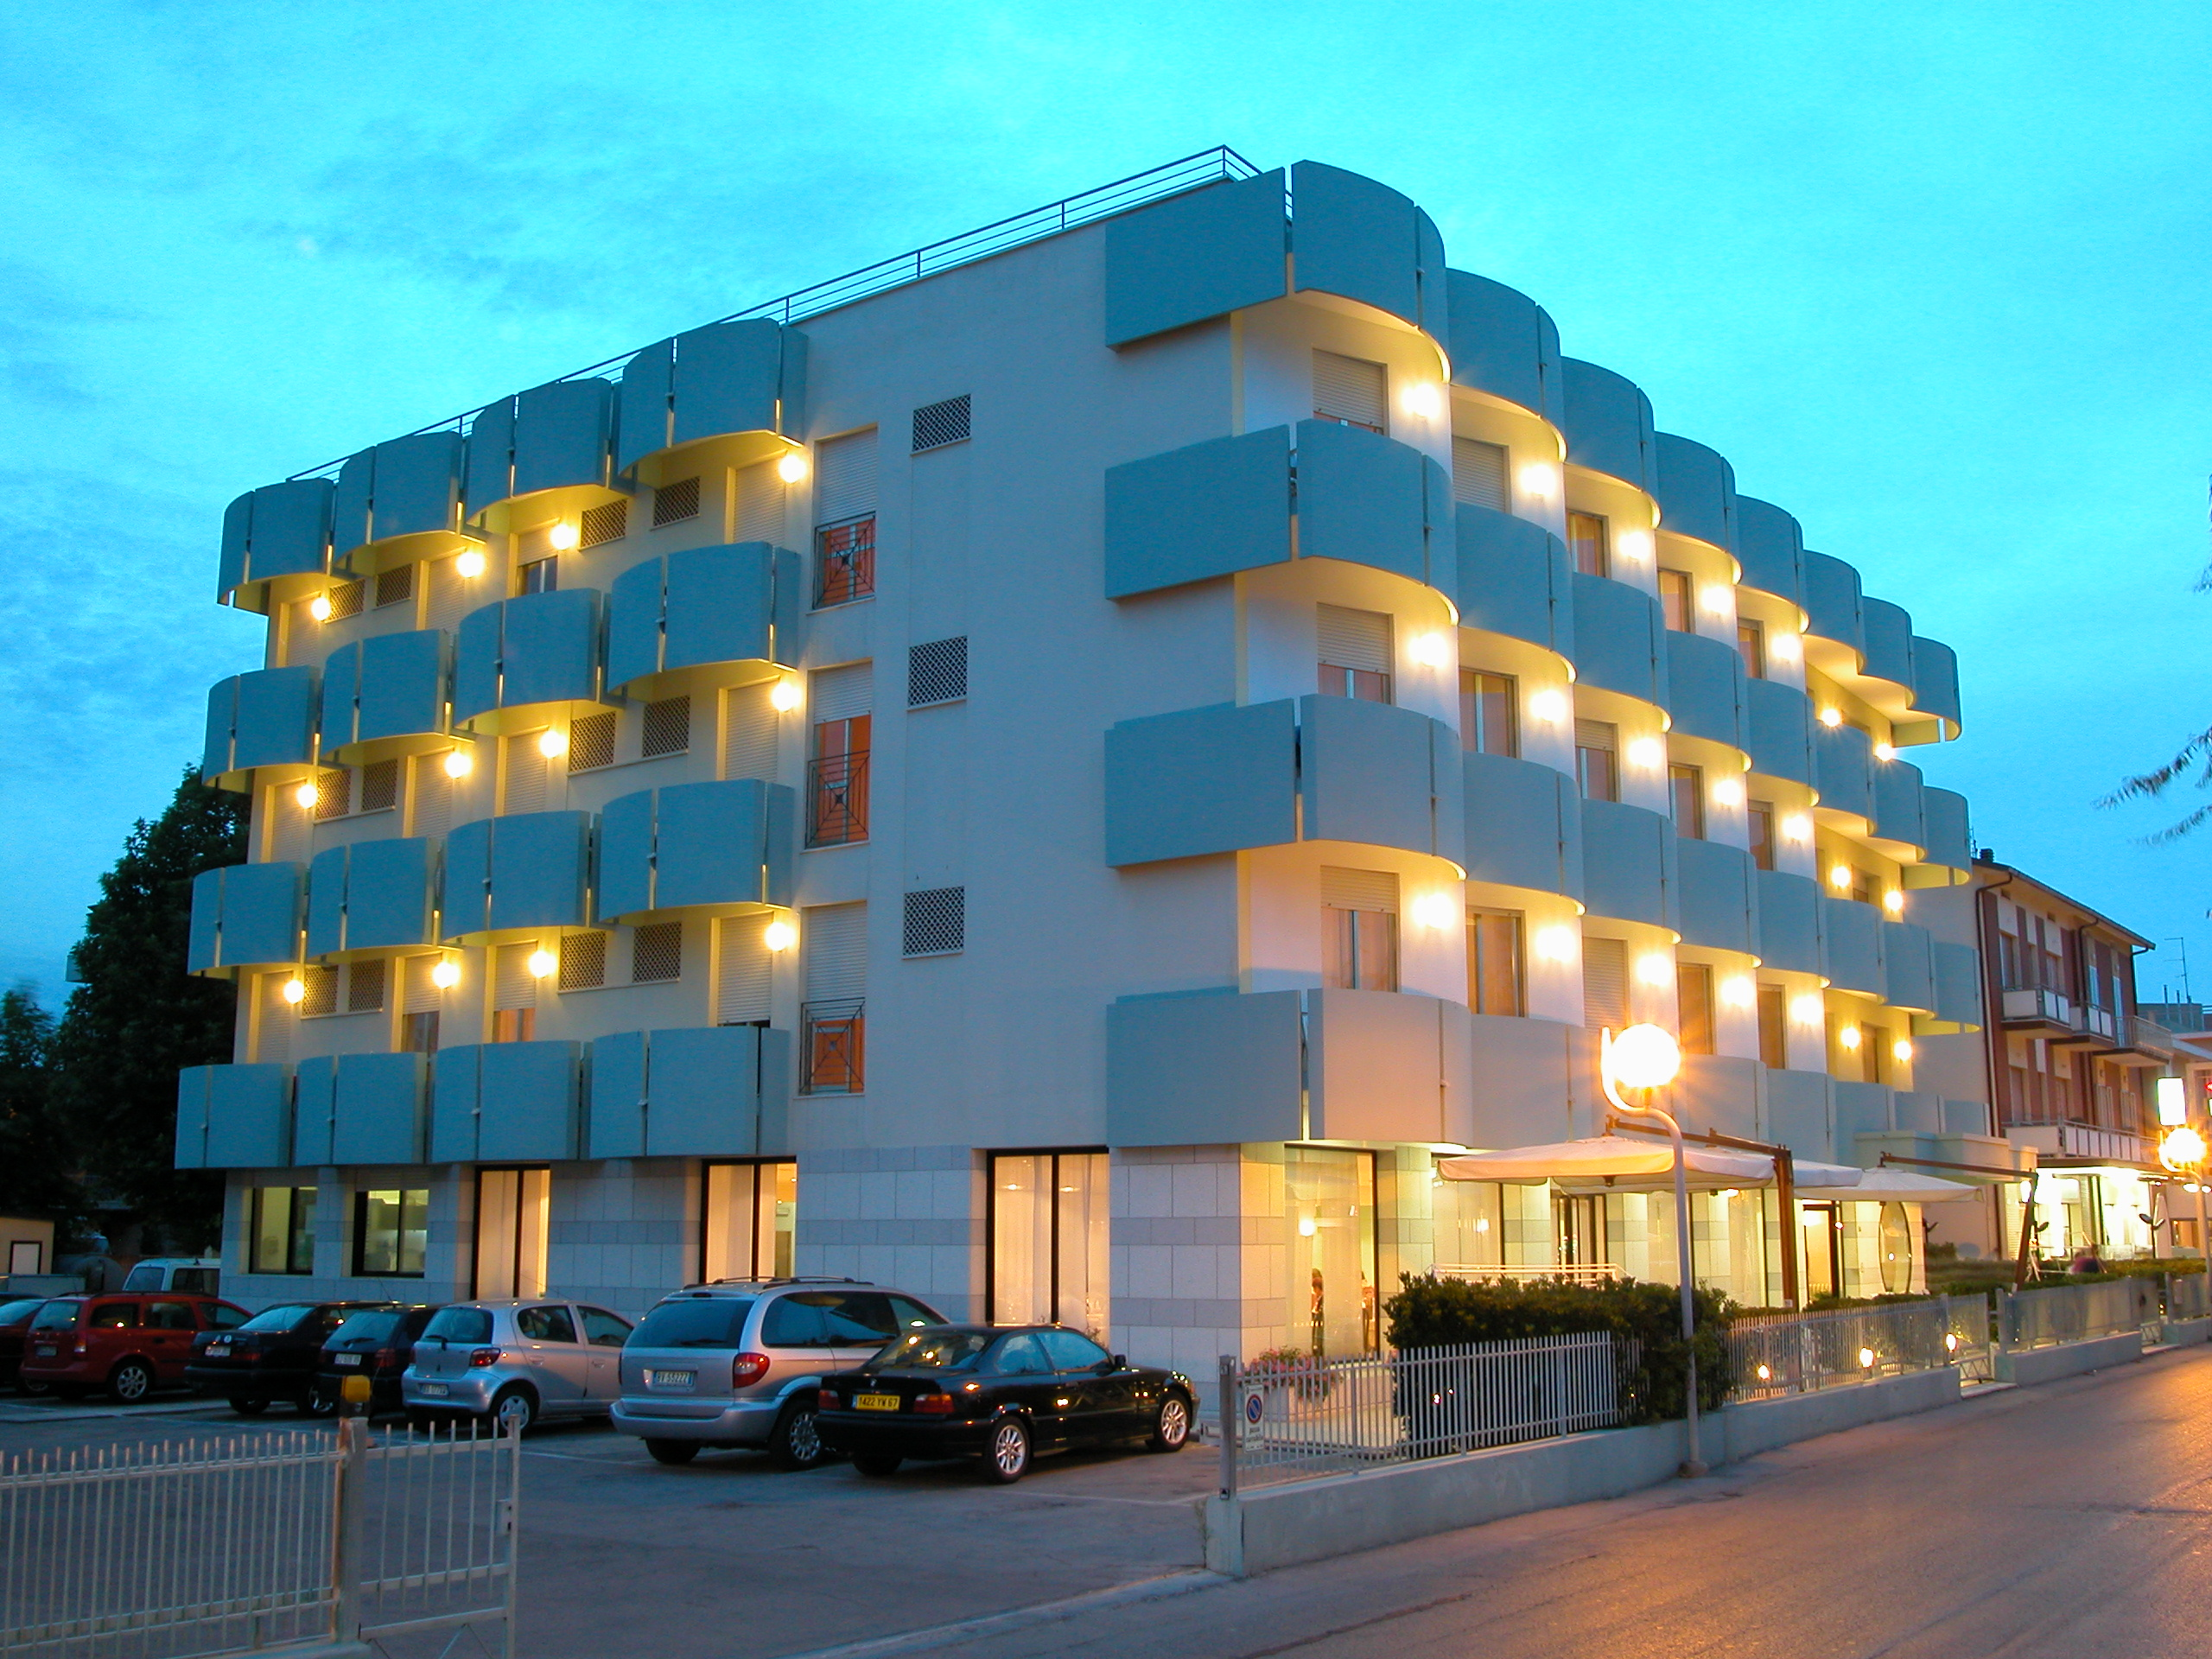 Elenco hotel Riviera di Rimini - MADE IN RIMINI Holidays